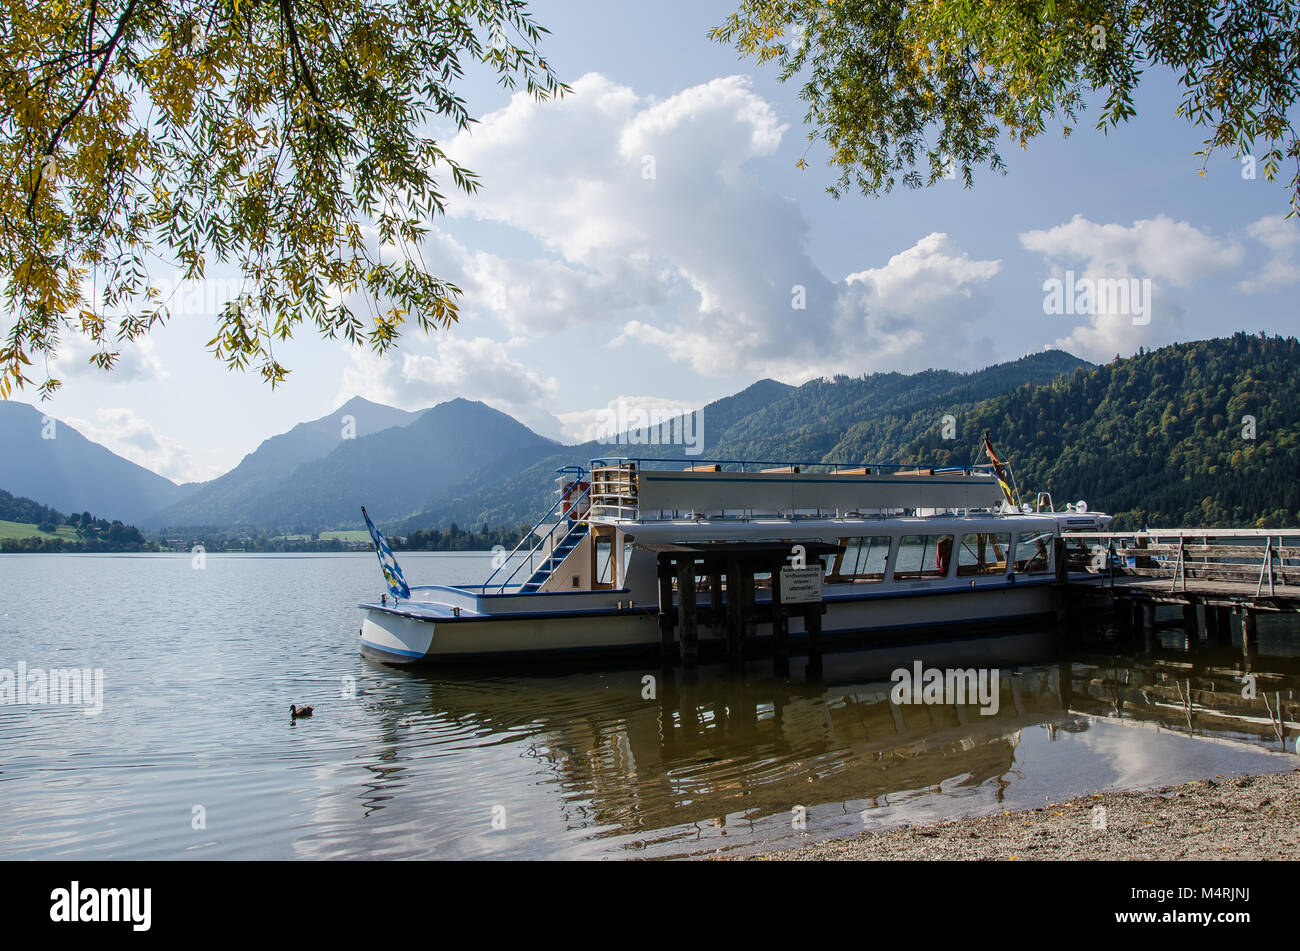 At Schliersee, one can explore the lake from a boat, which is great fun in summer. - Stock Image